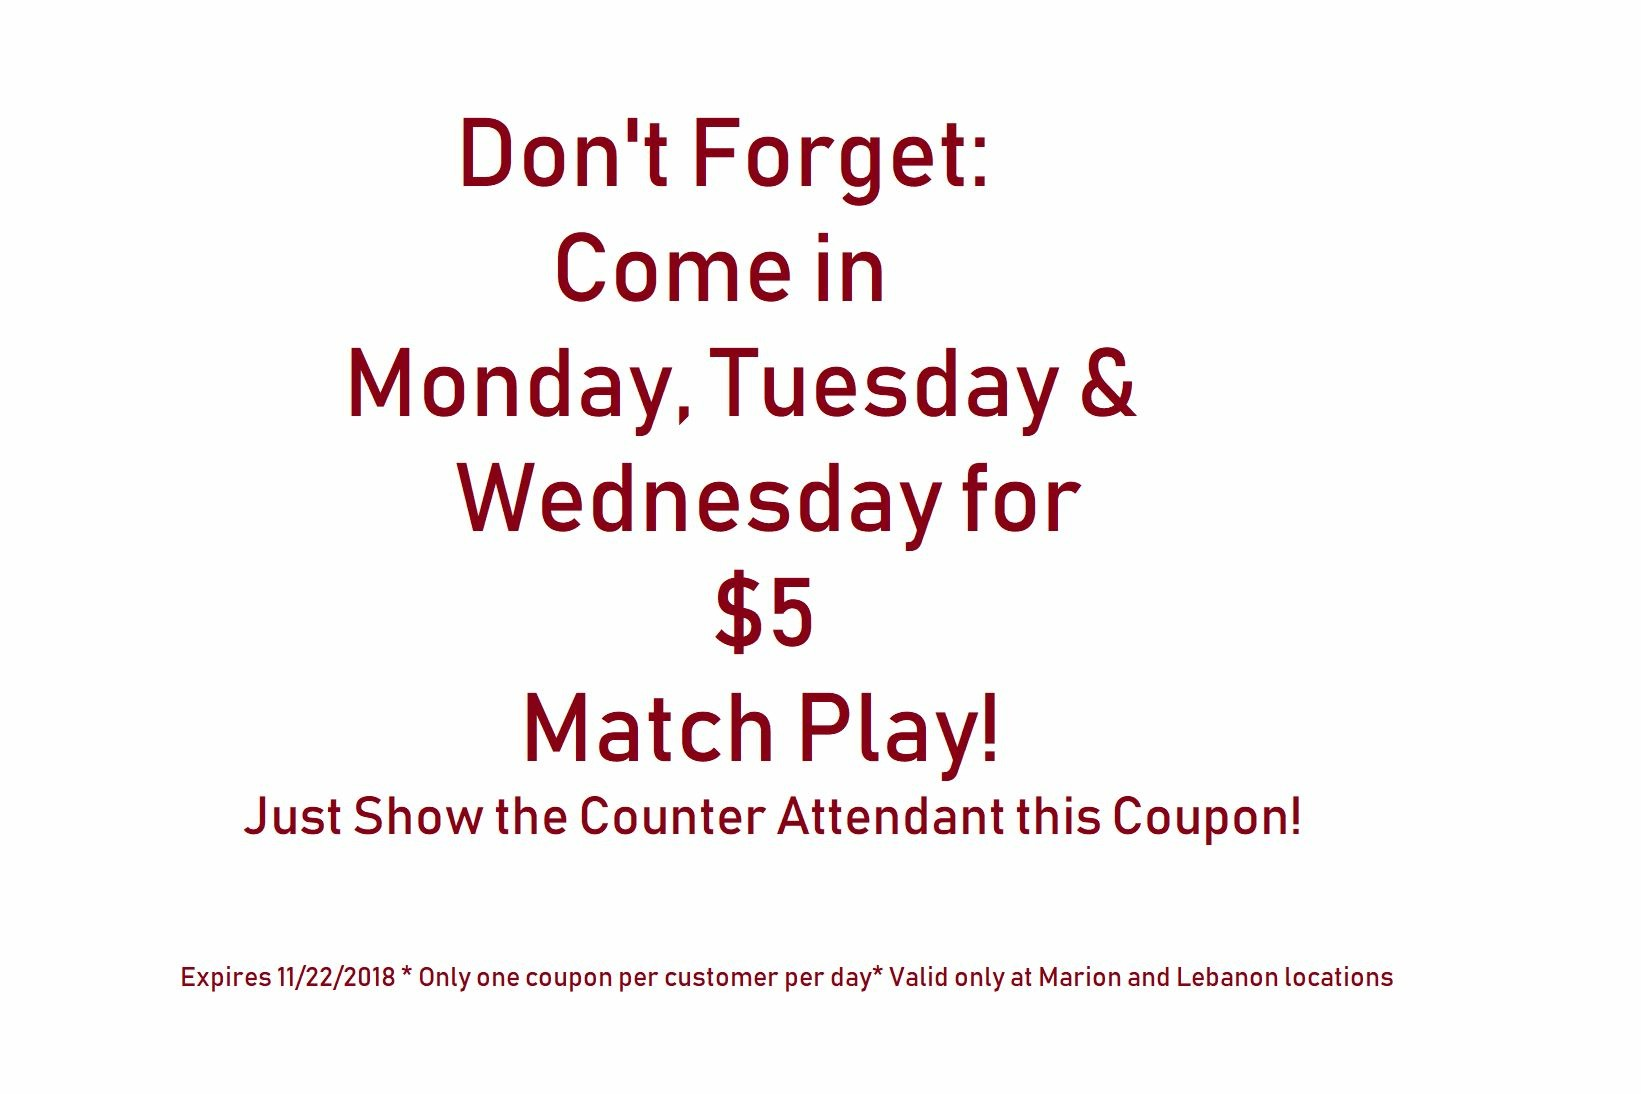 Free match play at Lucy's Place!